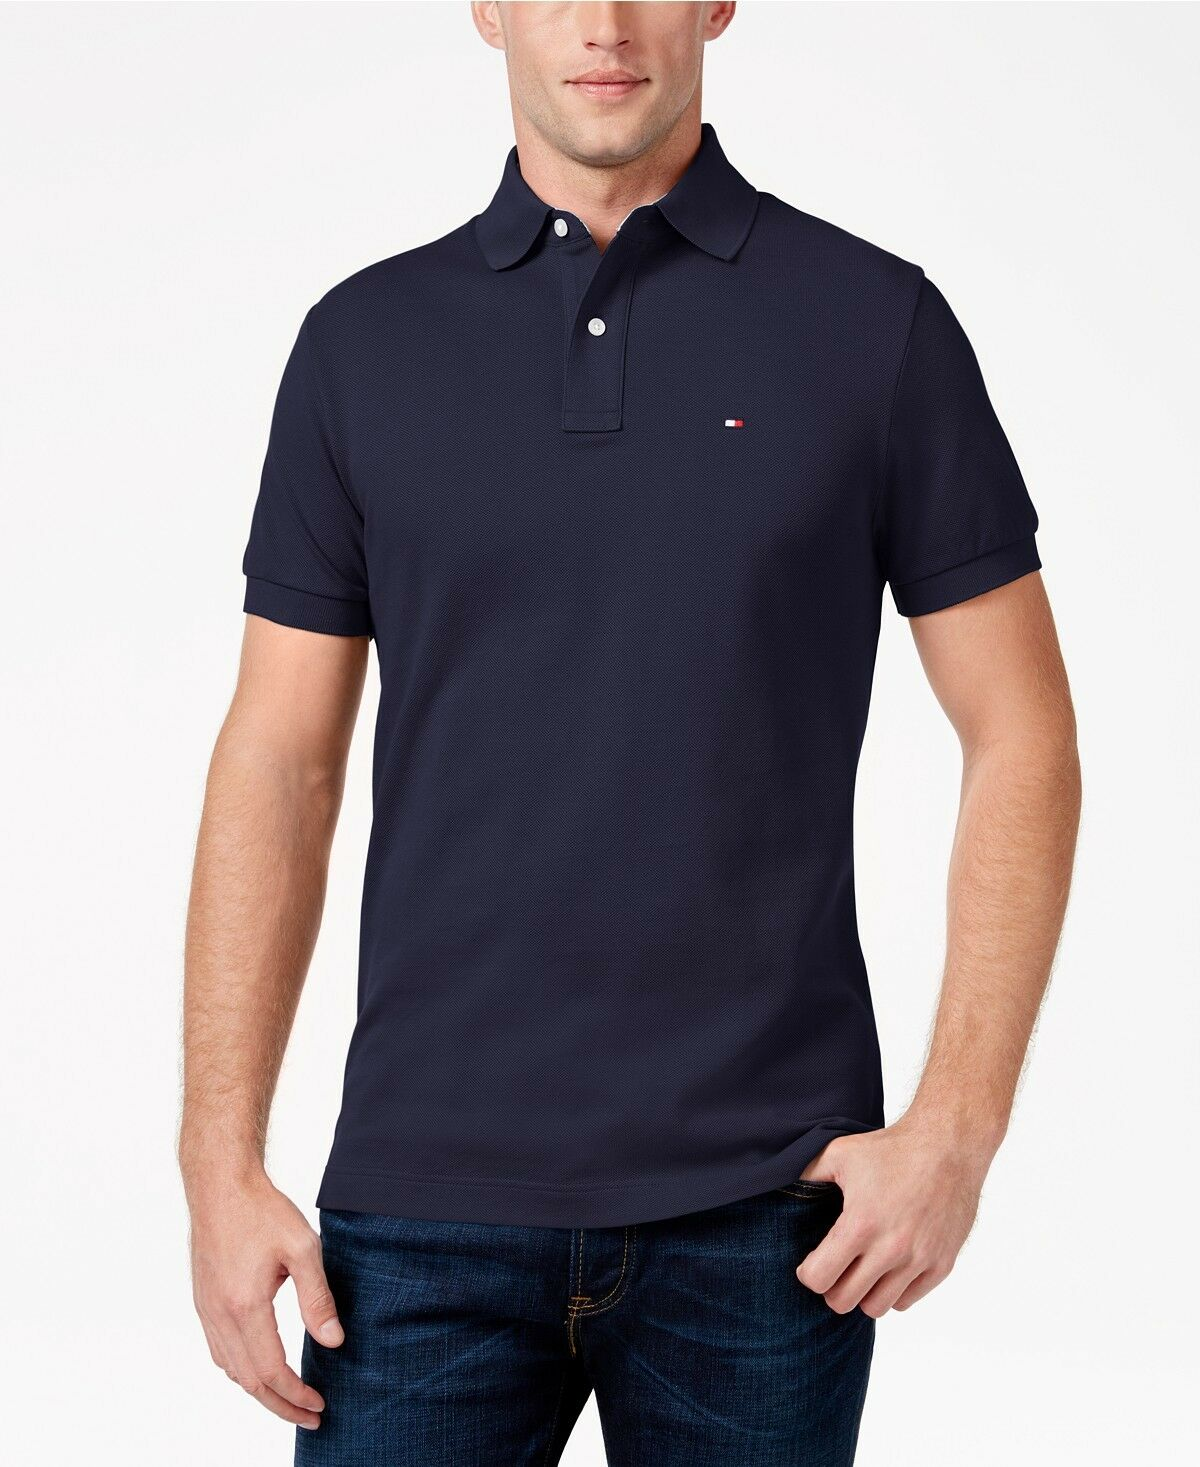 New NWT Mens Tommy Hilfiger Polo Shirt Custom Ivy Fit Small Medium Large XL